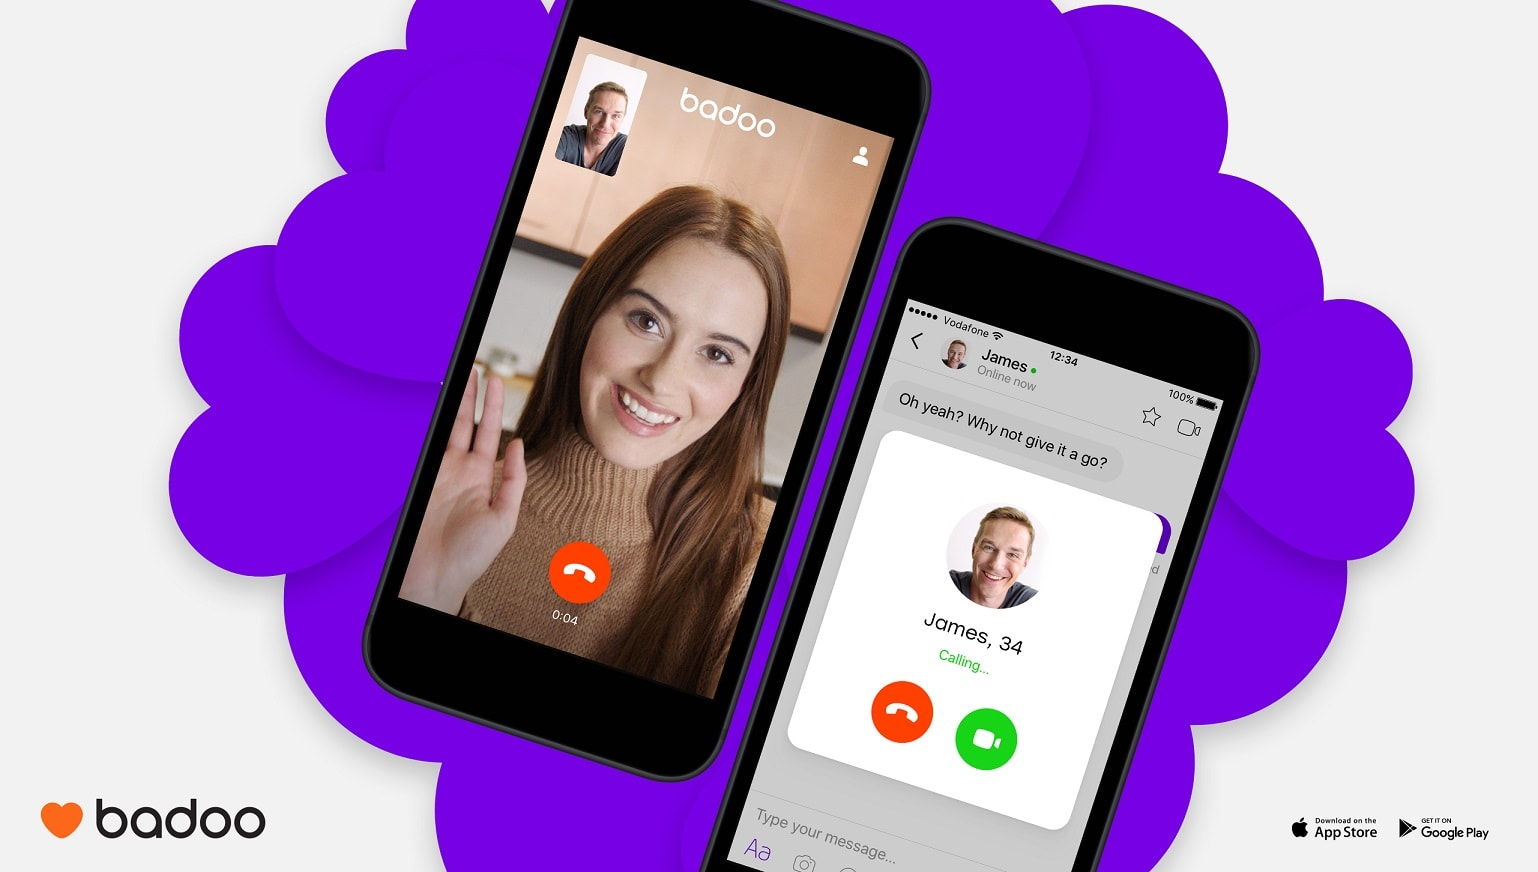 Dating app Badoo adds video chat to help you filter out creeps